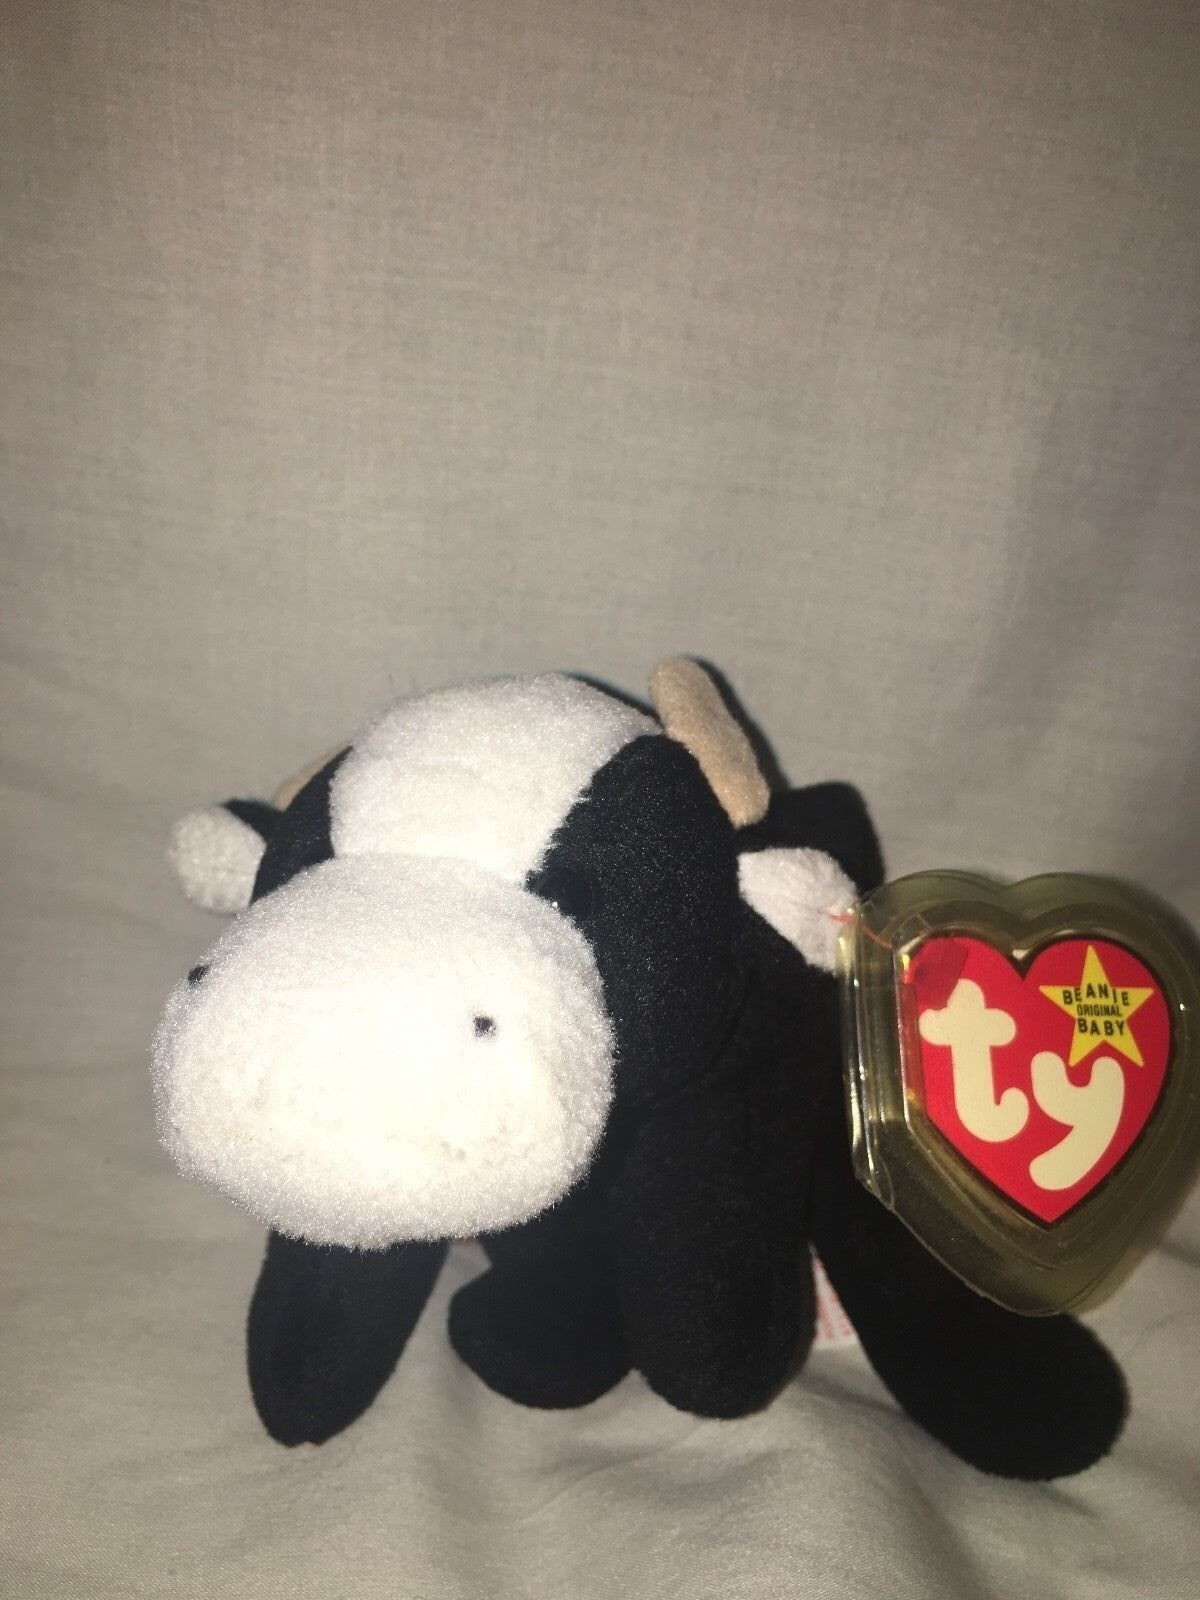 1994 Daisy Daisy Daisy the Cow Ty Beanie Baby with Spot in Mint Condition  3bc1c5